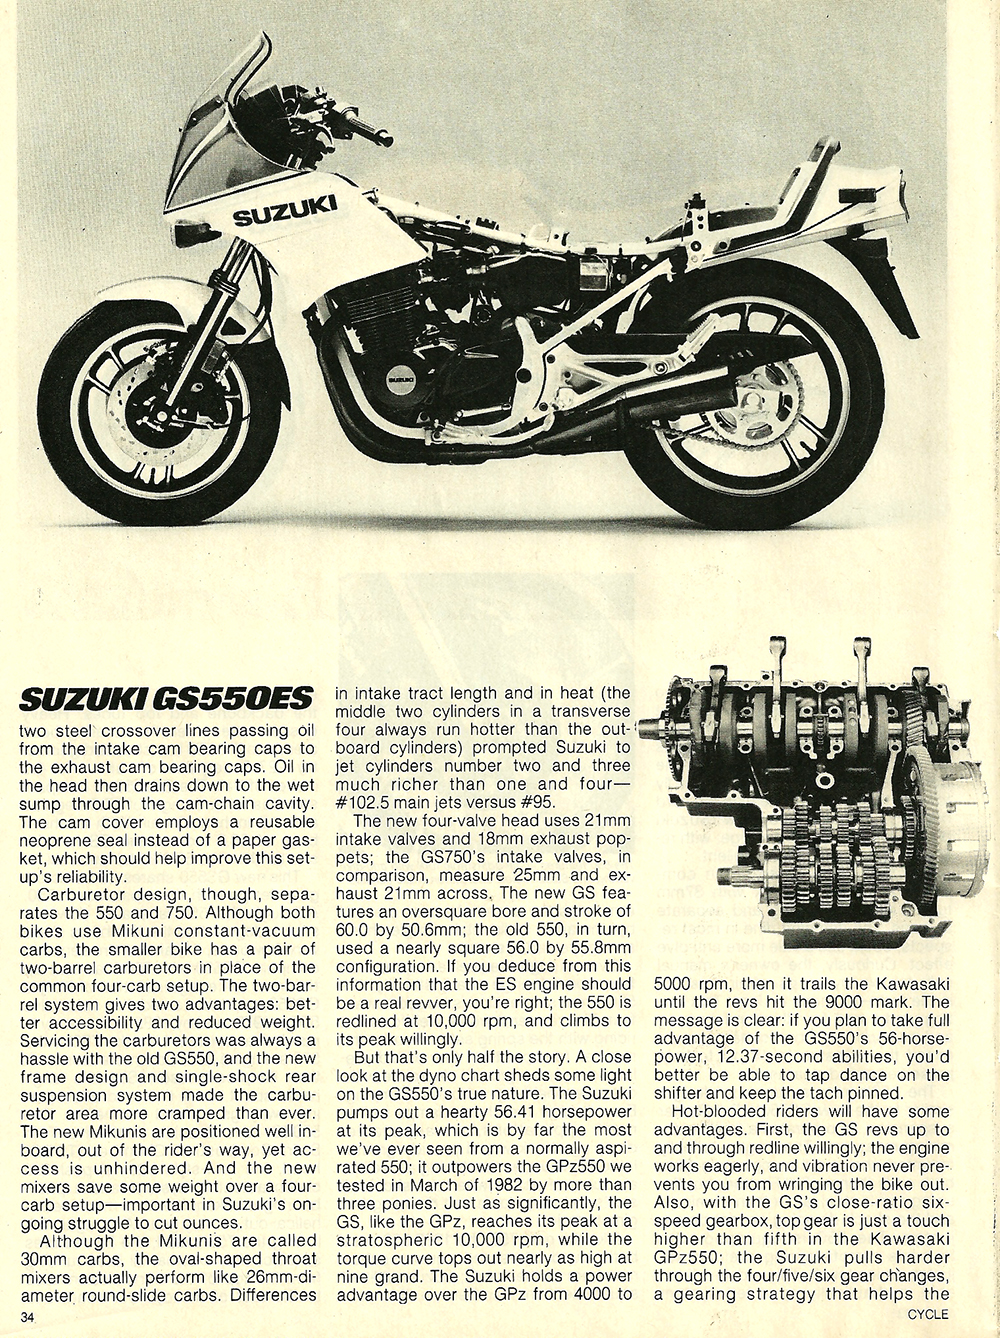 1983 Suzuki GS550ES road test 5.jpg